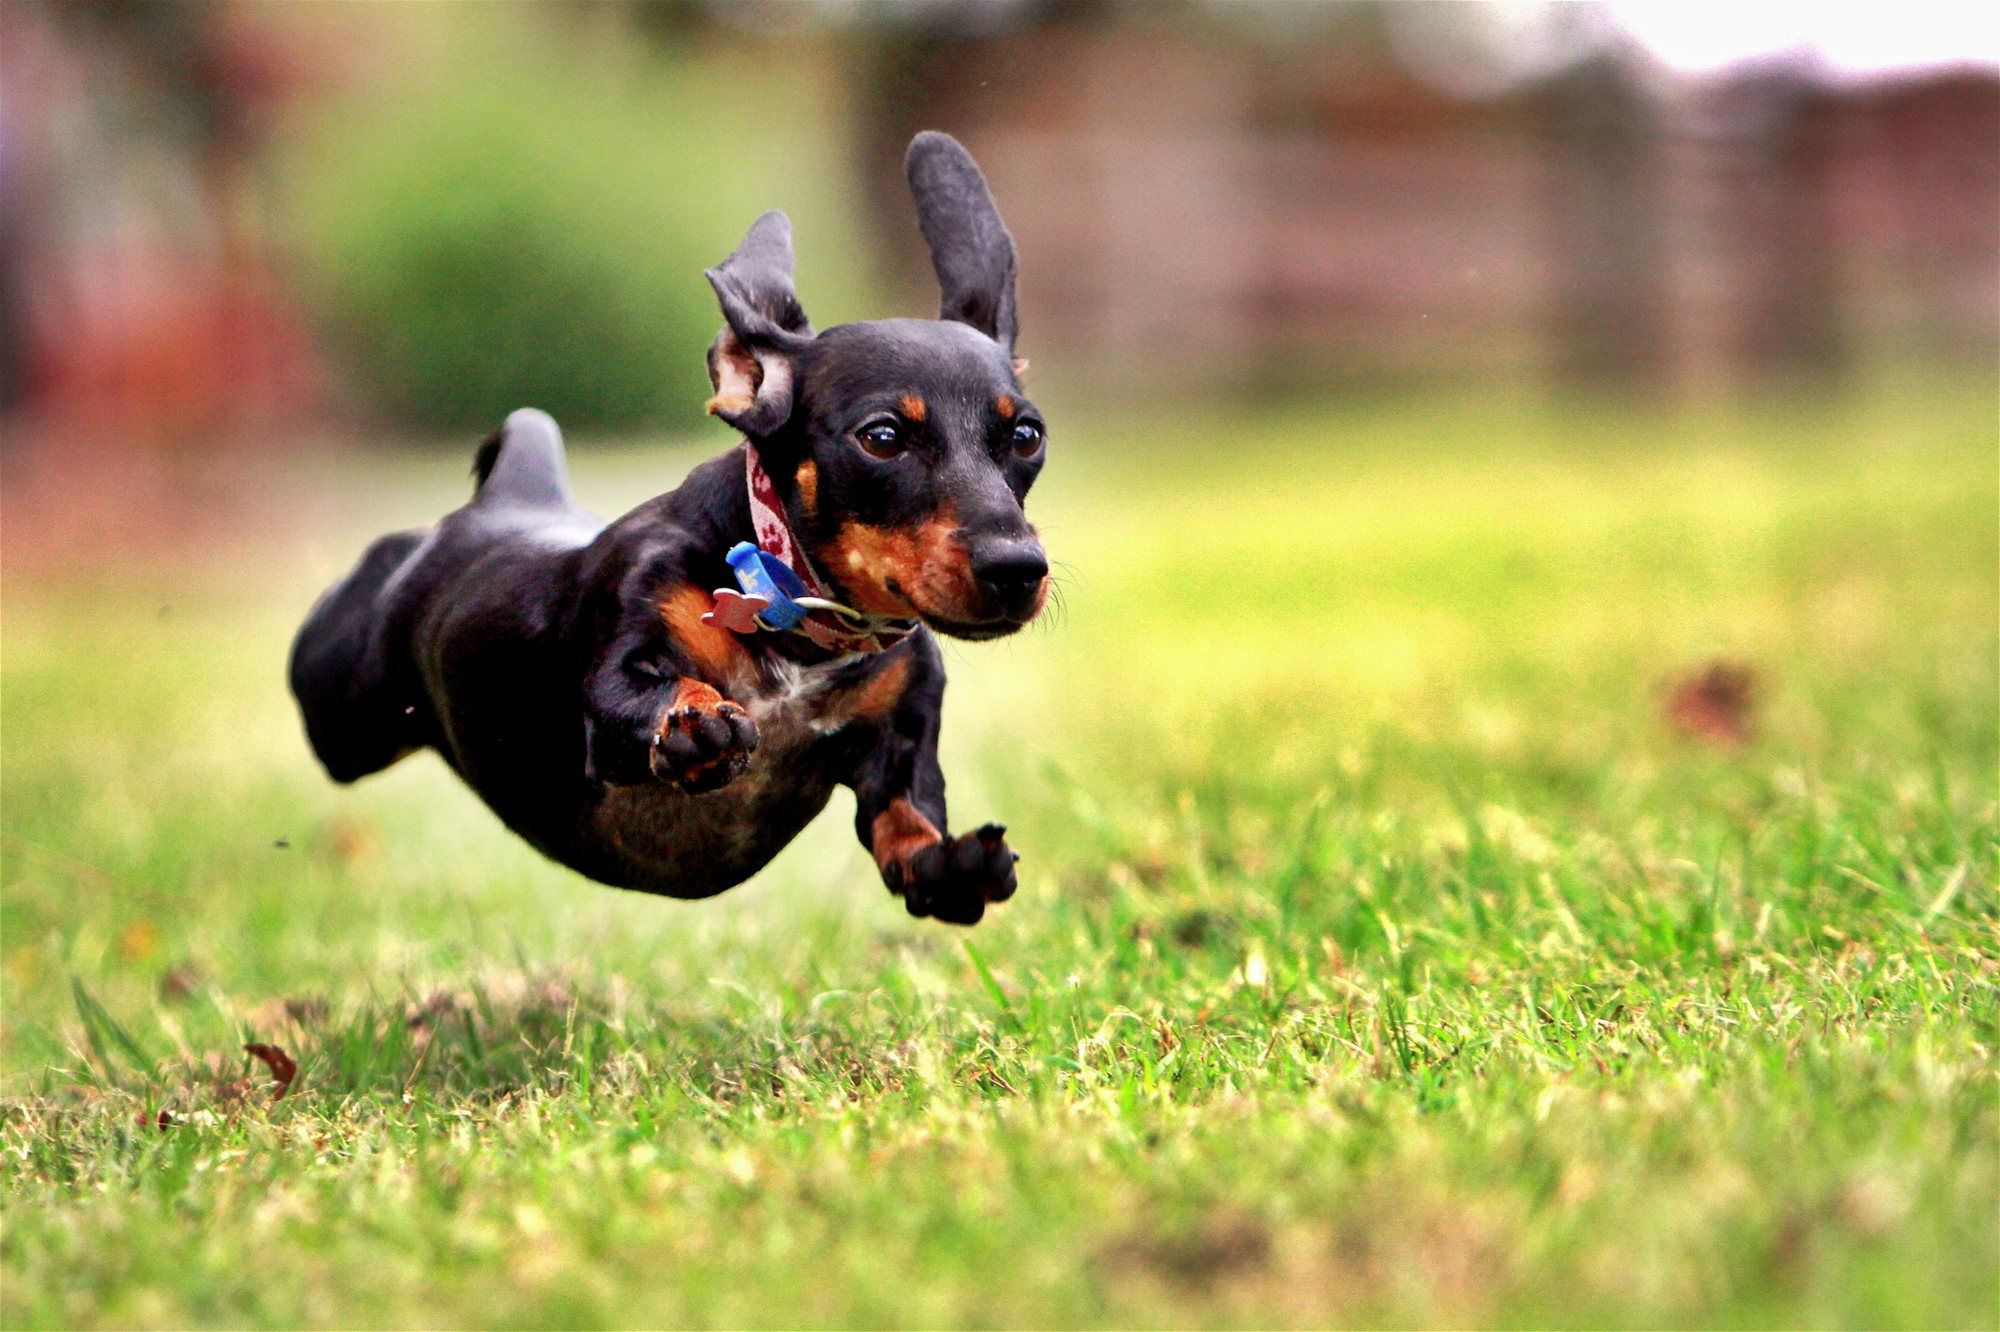 """Photo credit: """"crazy dog"""" by  m.maddo Licensed under  CC BY 2.0 ."""